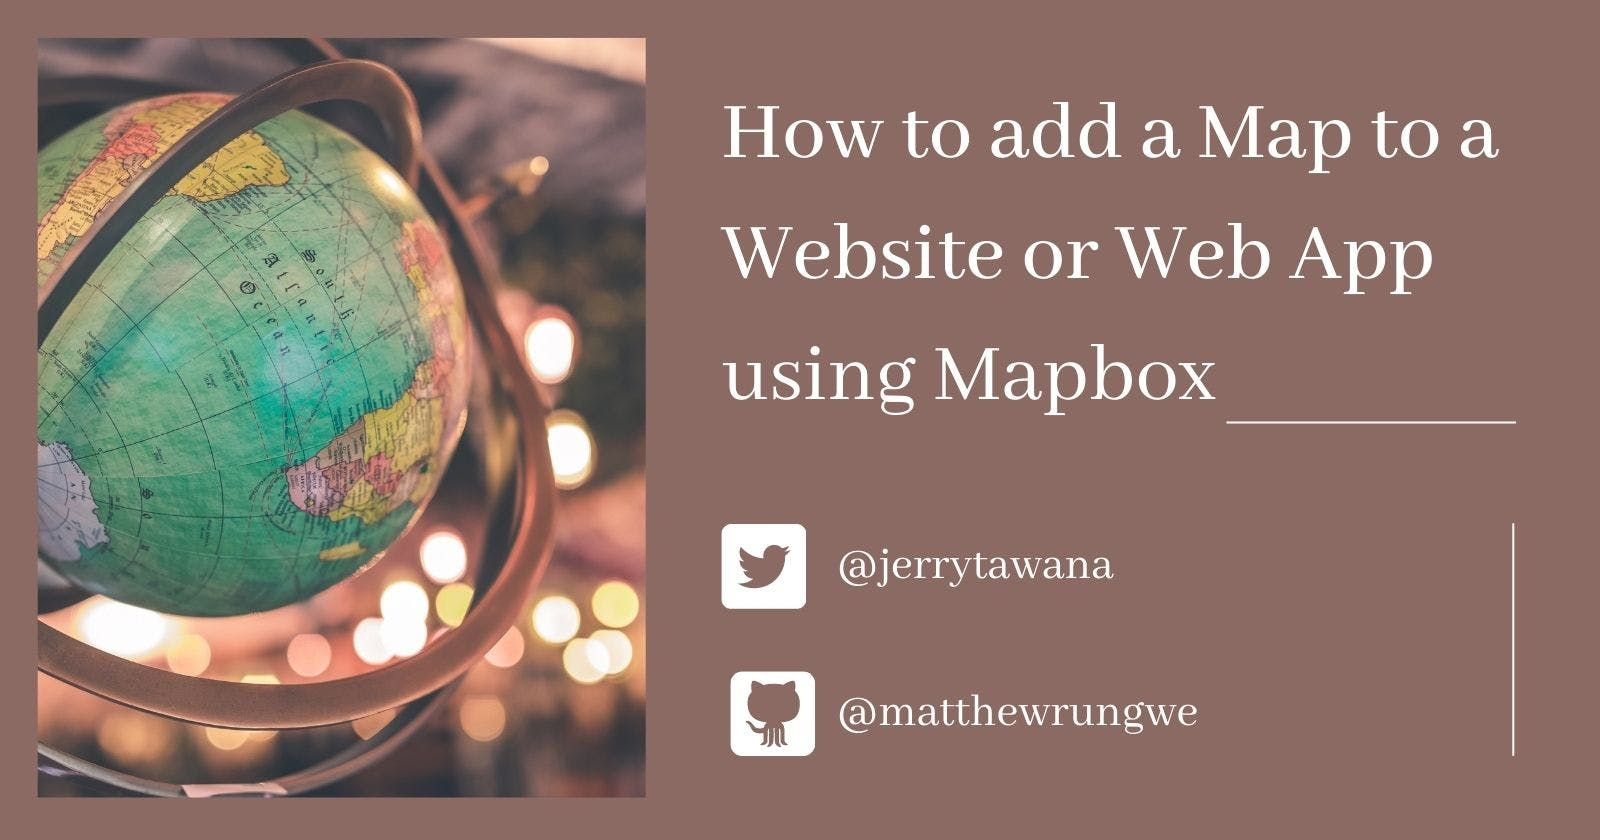 How to add a map to a Website or Web App using Mapbox